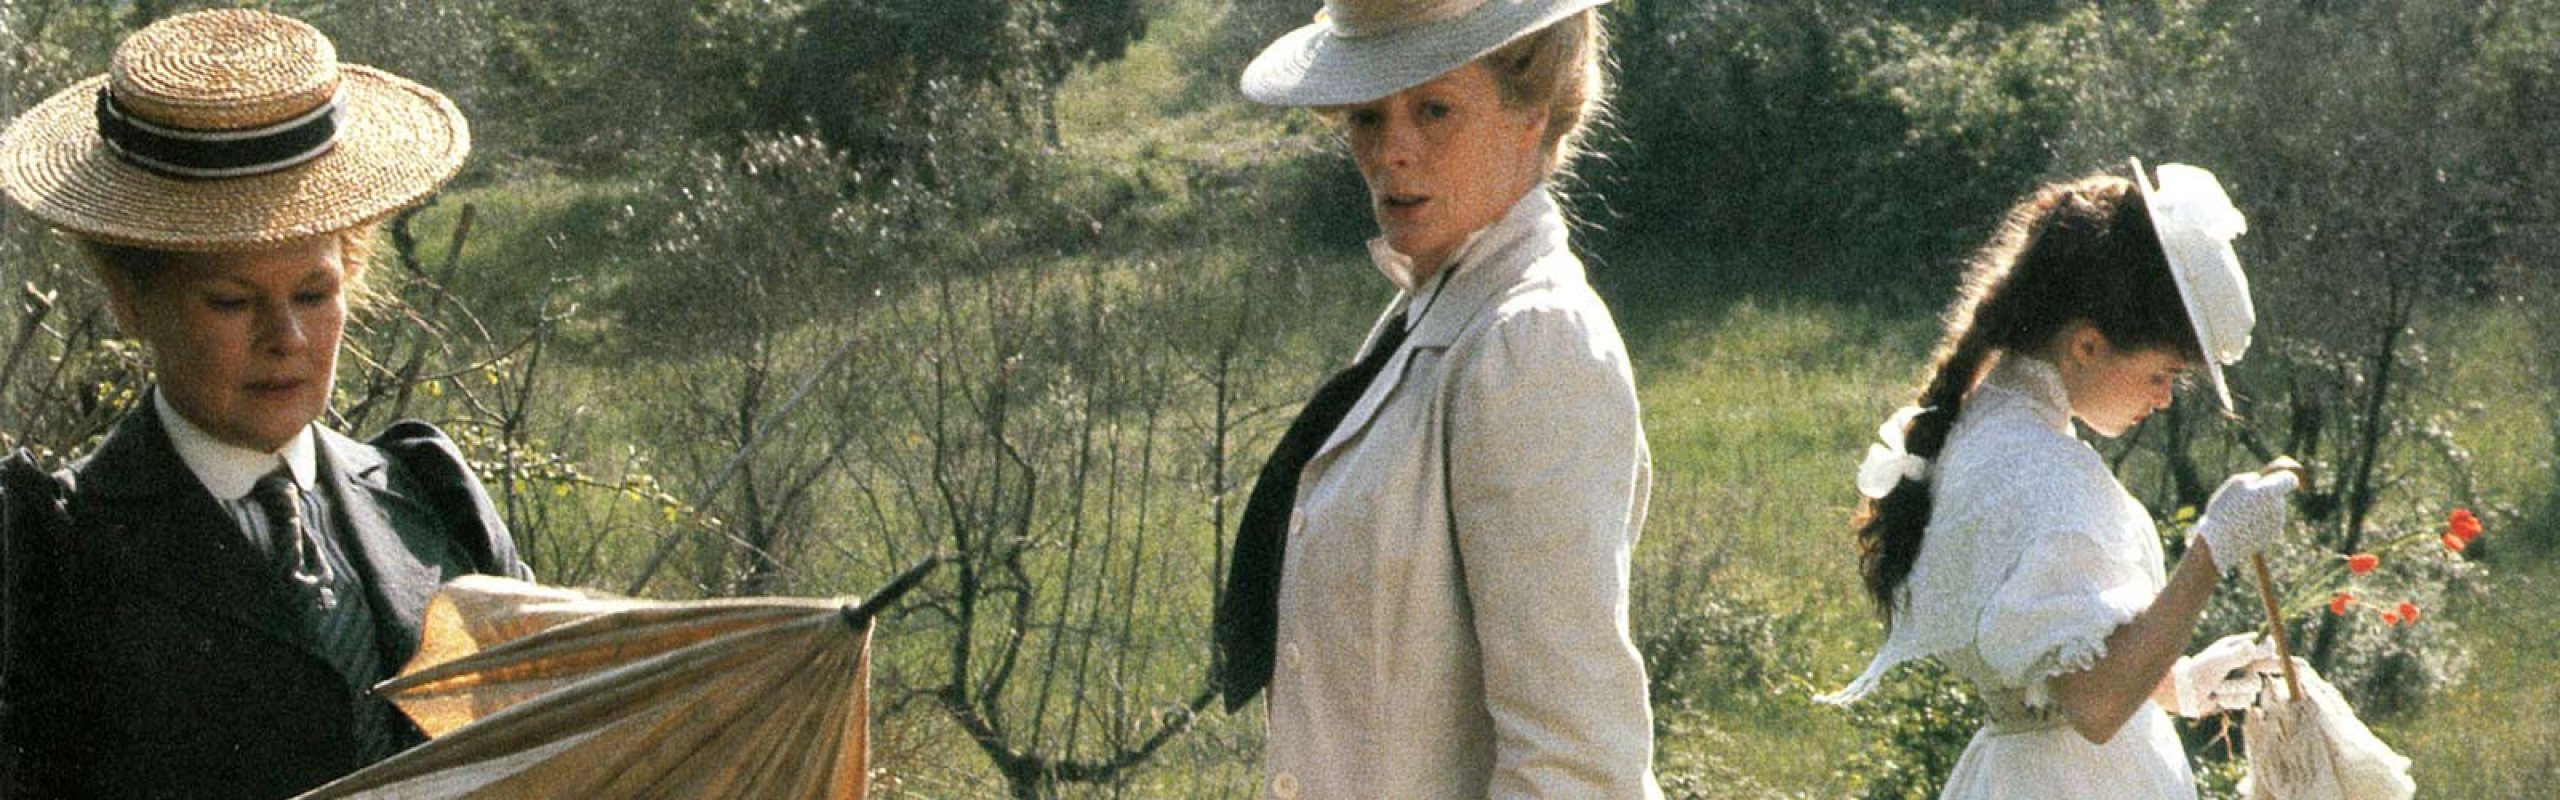 Rooms and Views: filming in Florence with Merchant Ivory